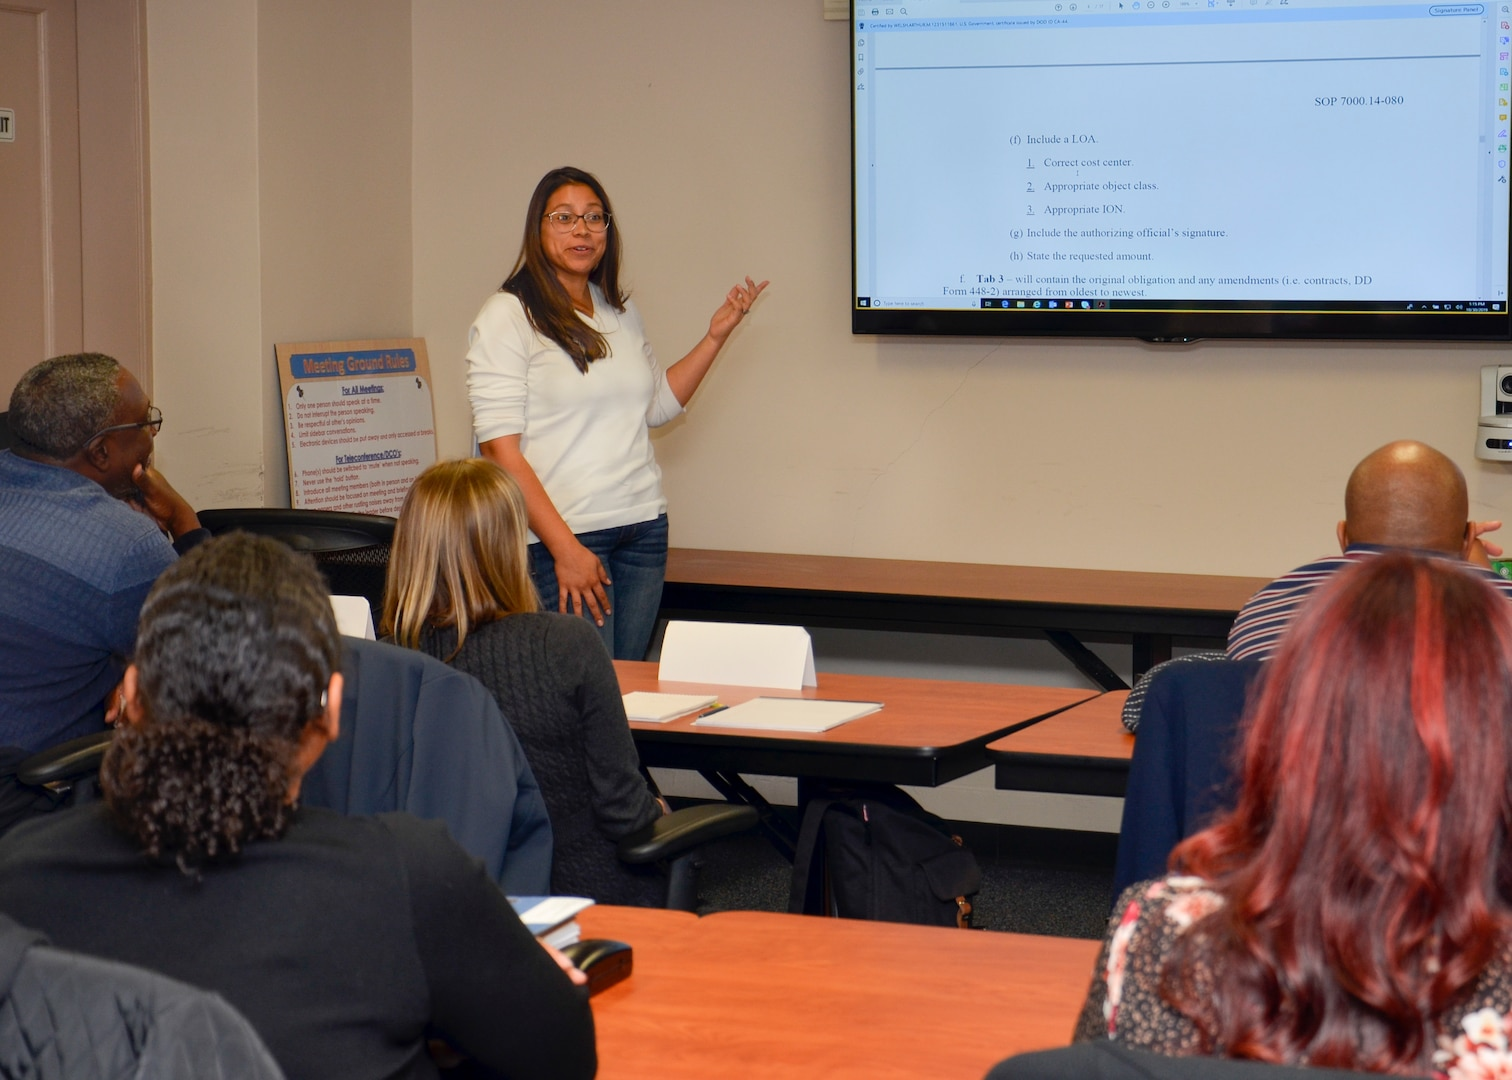 Crystal Leija stands in front of a group of people sitting at tables and leads a workshop topic.